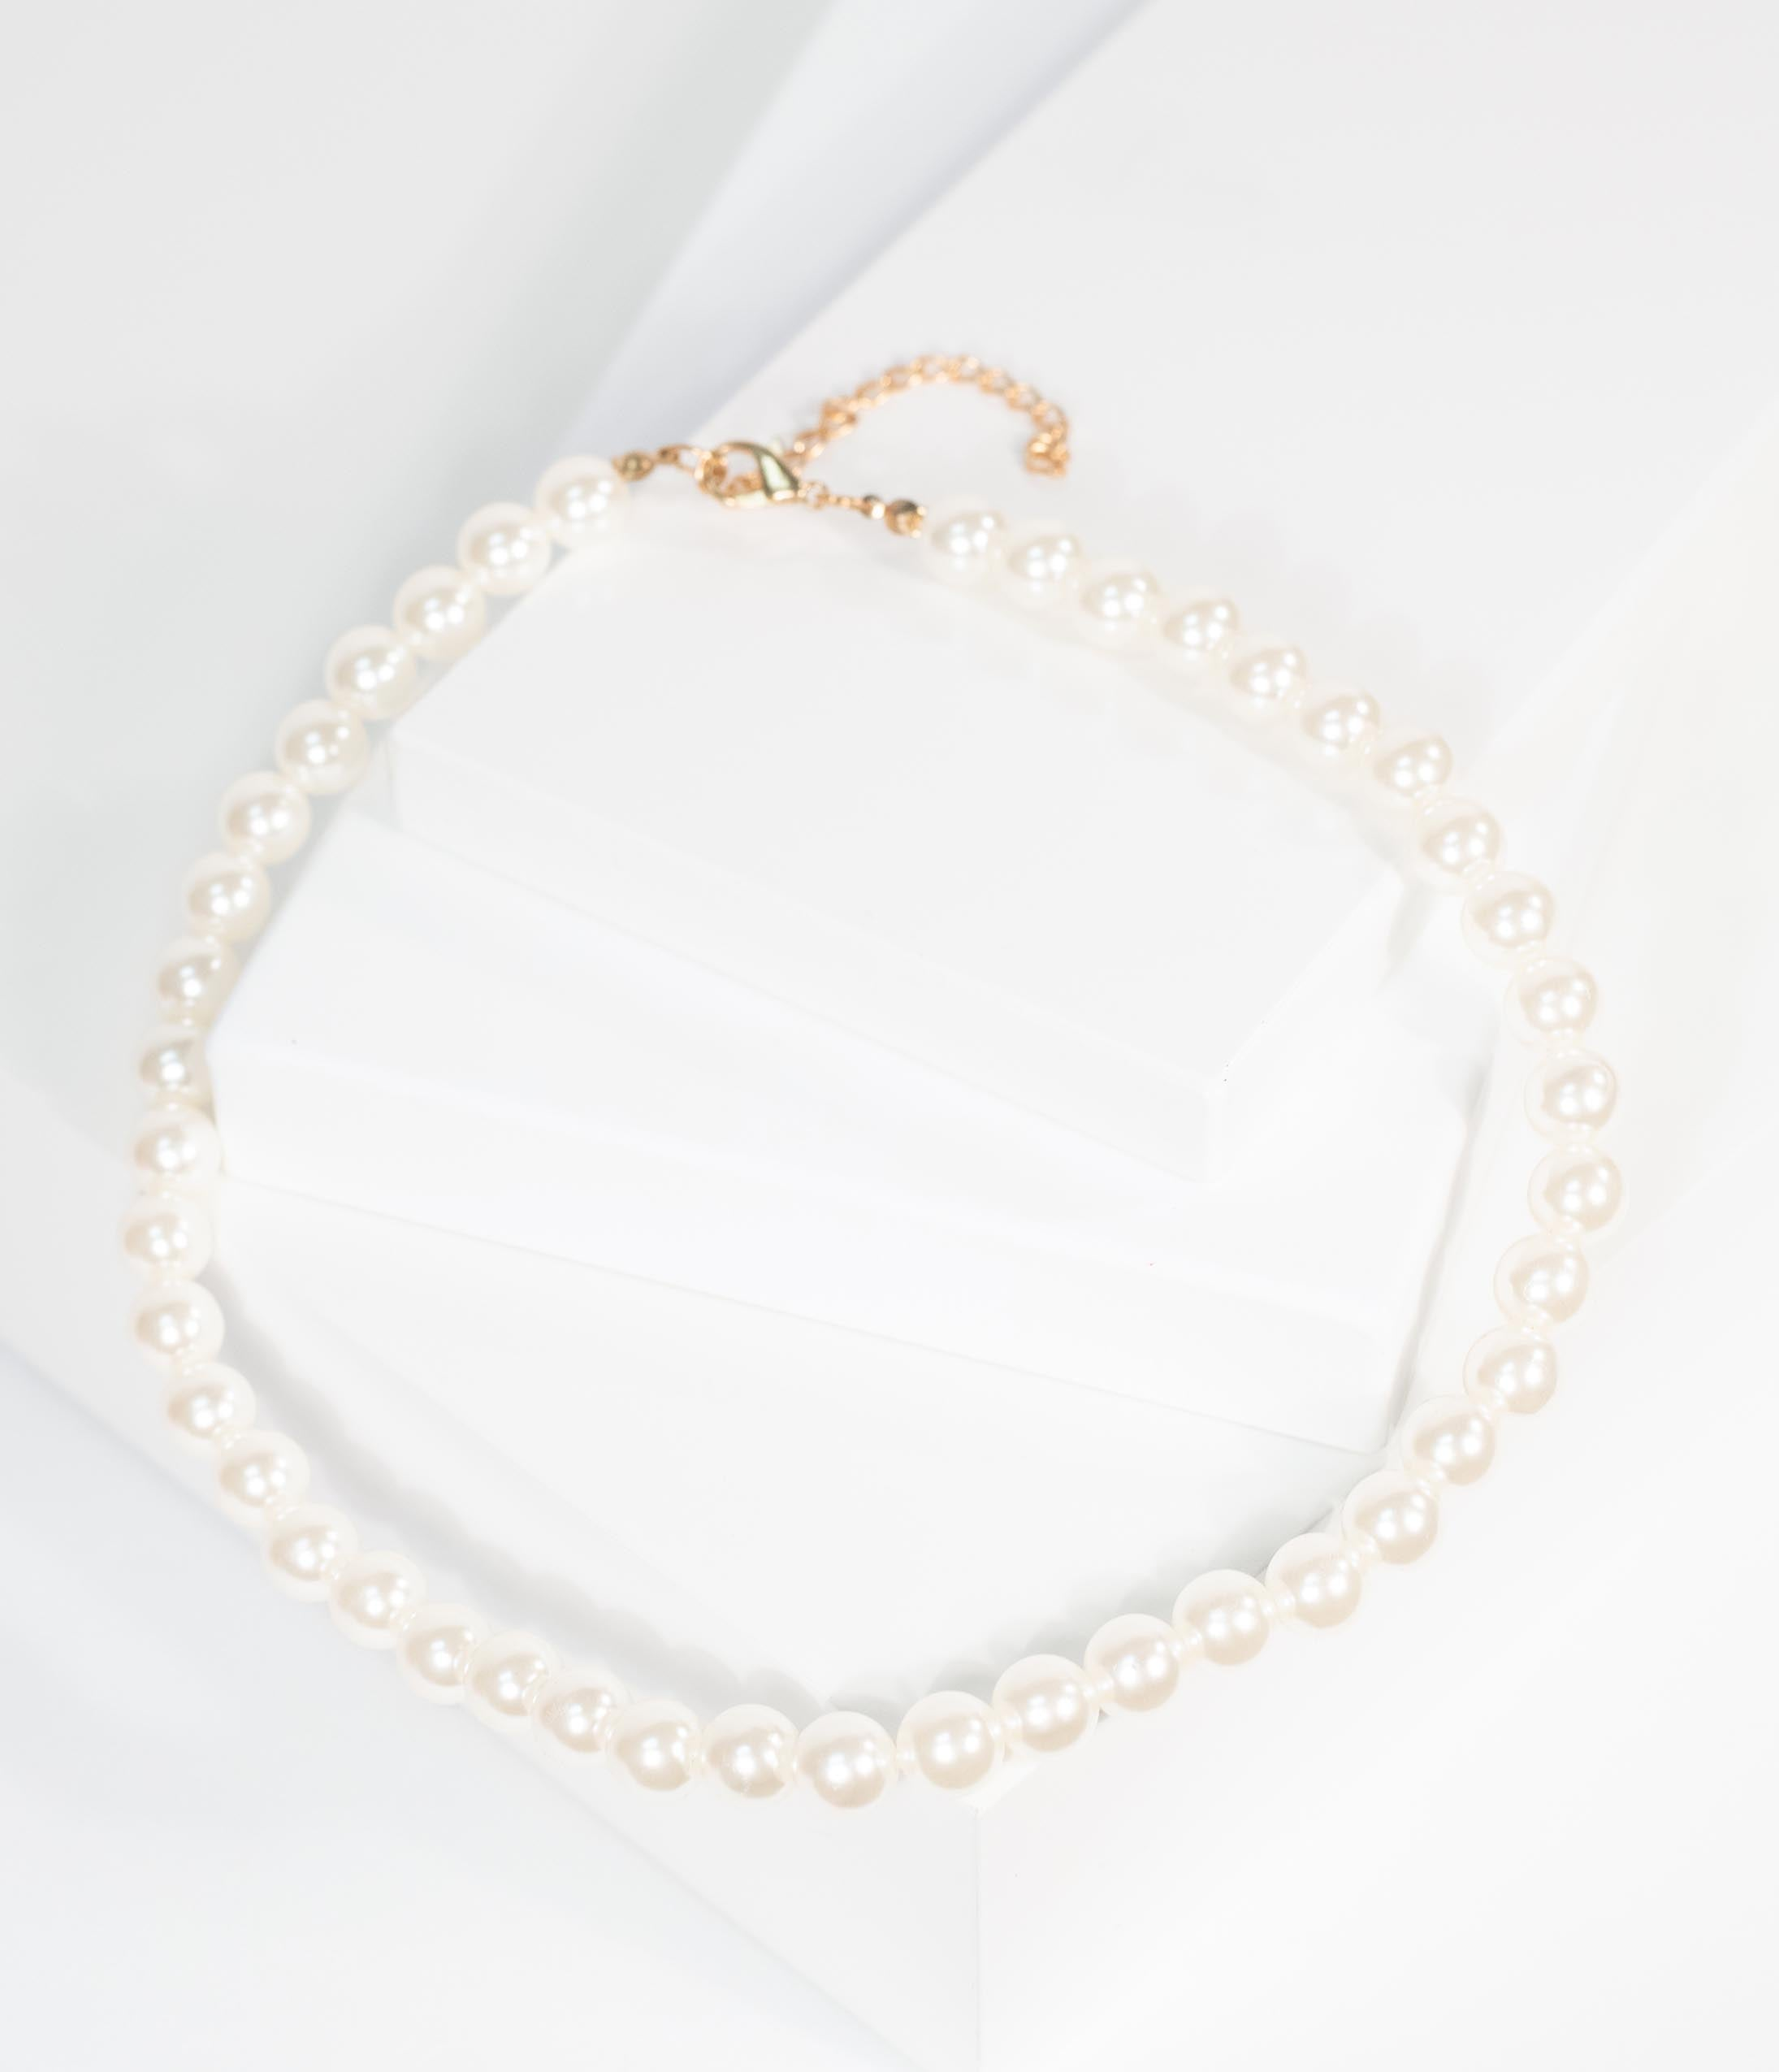 Vintage Style Jewelry, Retro Jewelry Vintage Style Ivory Pearl Single Row Necklace $18.00 AT vintagedancer.com